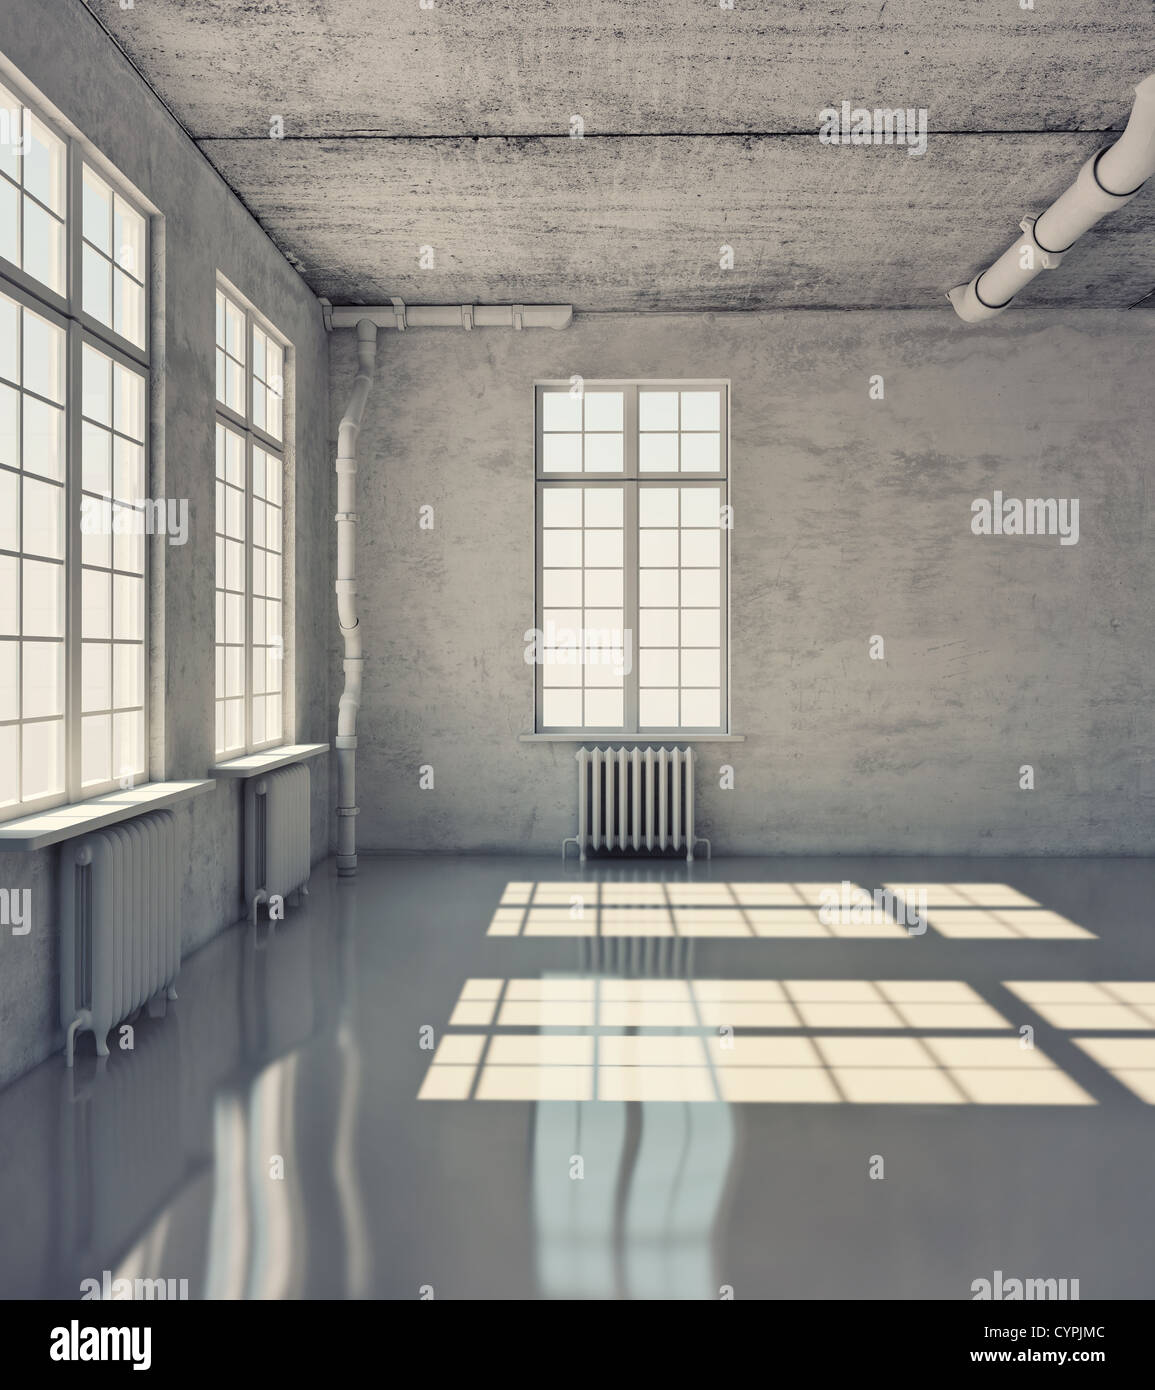 Salle vide avec windows (loft concept) Photo Stock